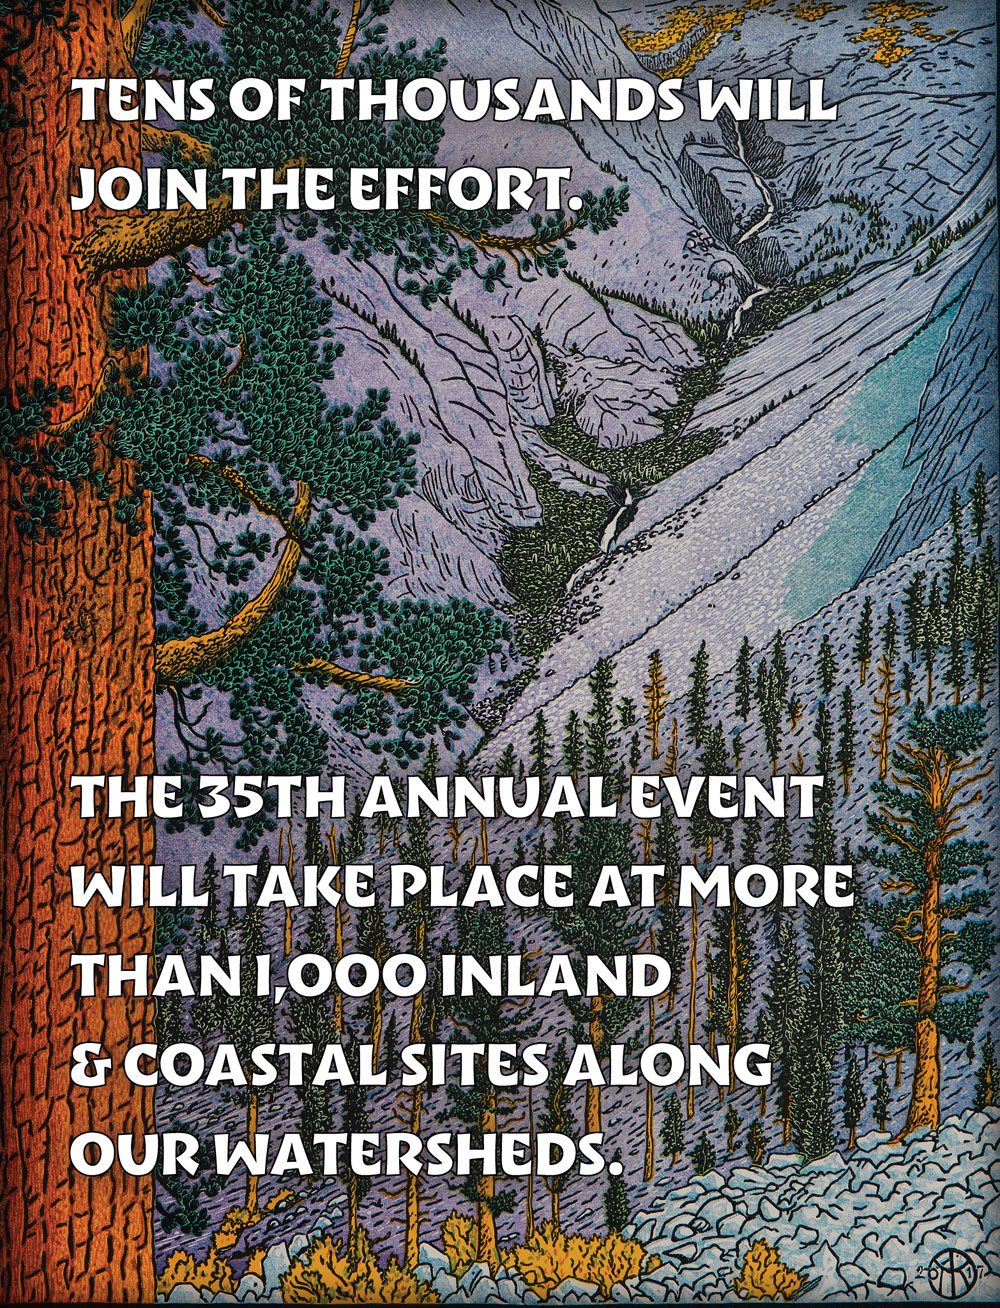 Tens of thousands will join the effort. The 35th annual event will take place at more than 1,000 inland and coastal sites along our watersheds